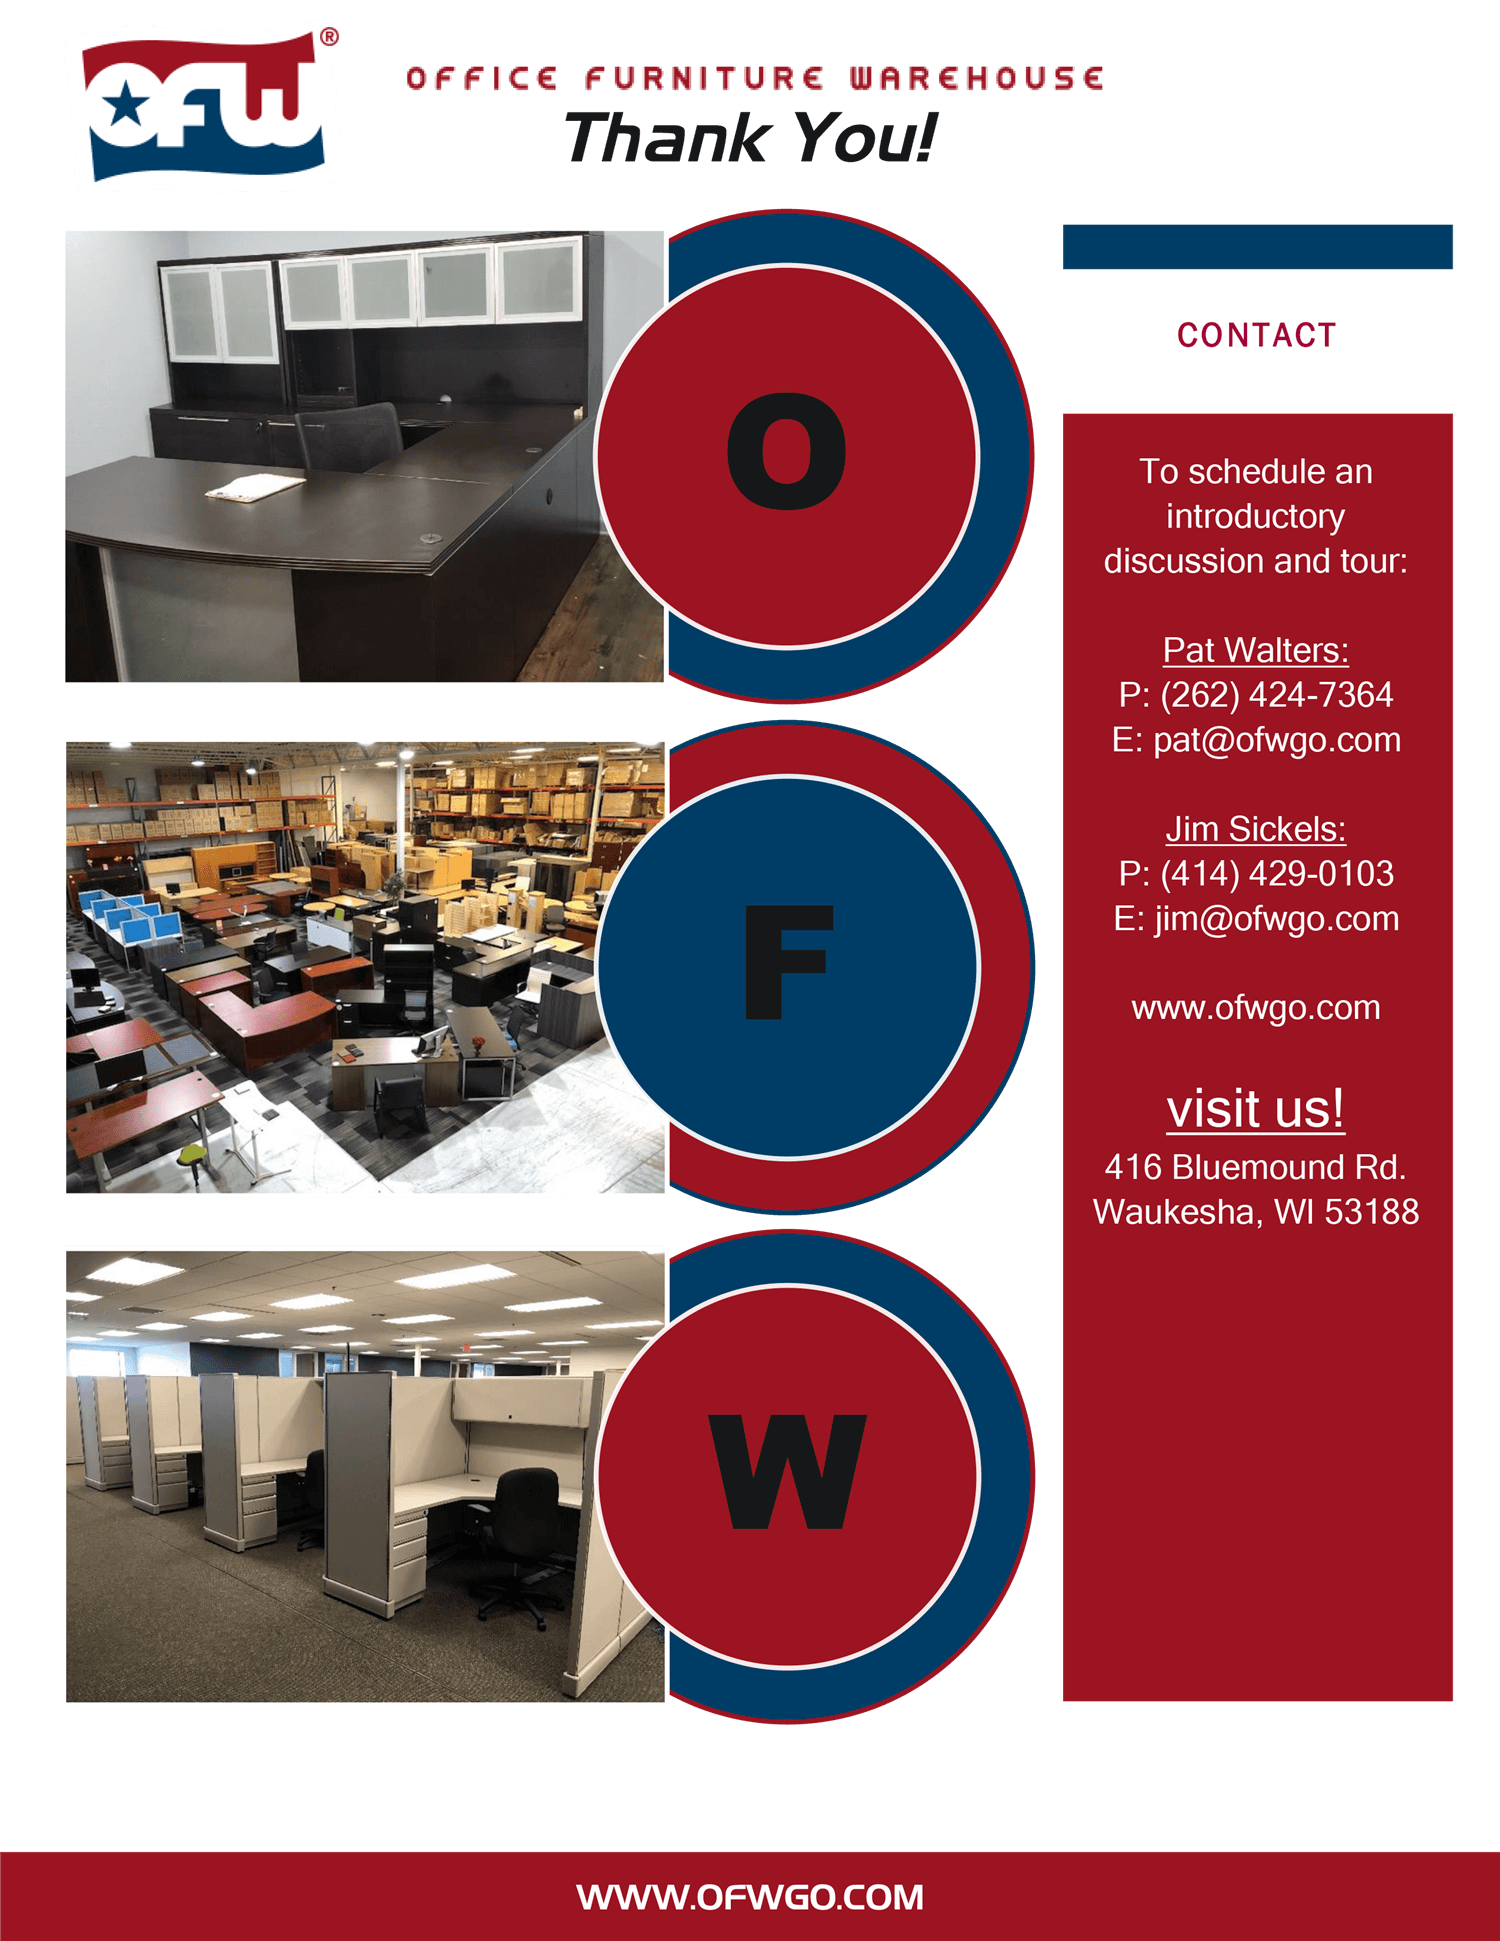 Contact Office Furniture Warehouse to learn more about franchise opportunities